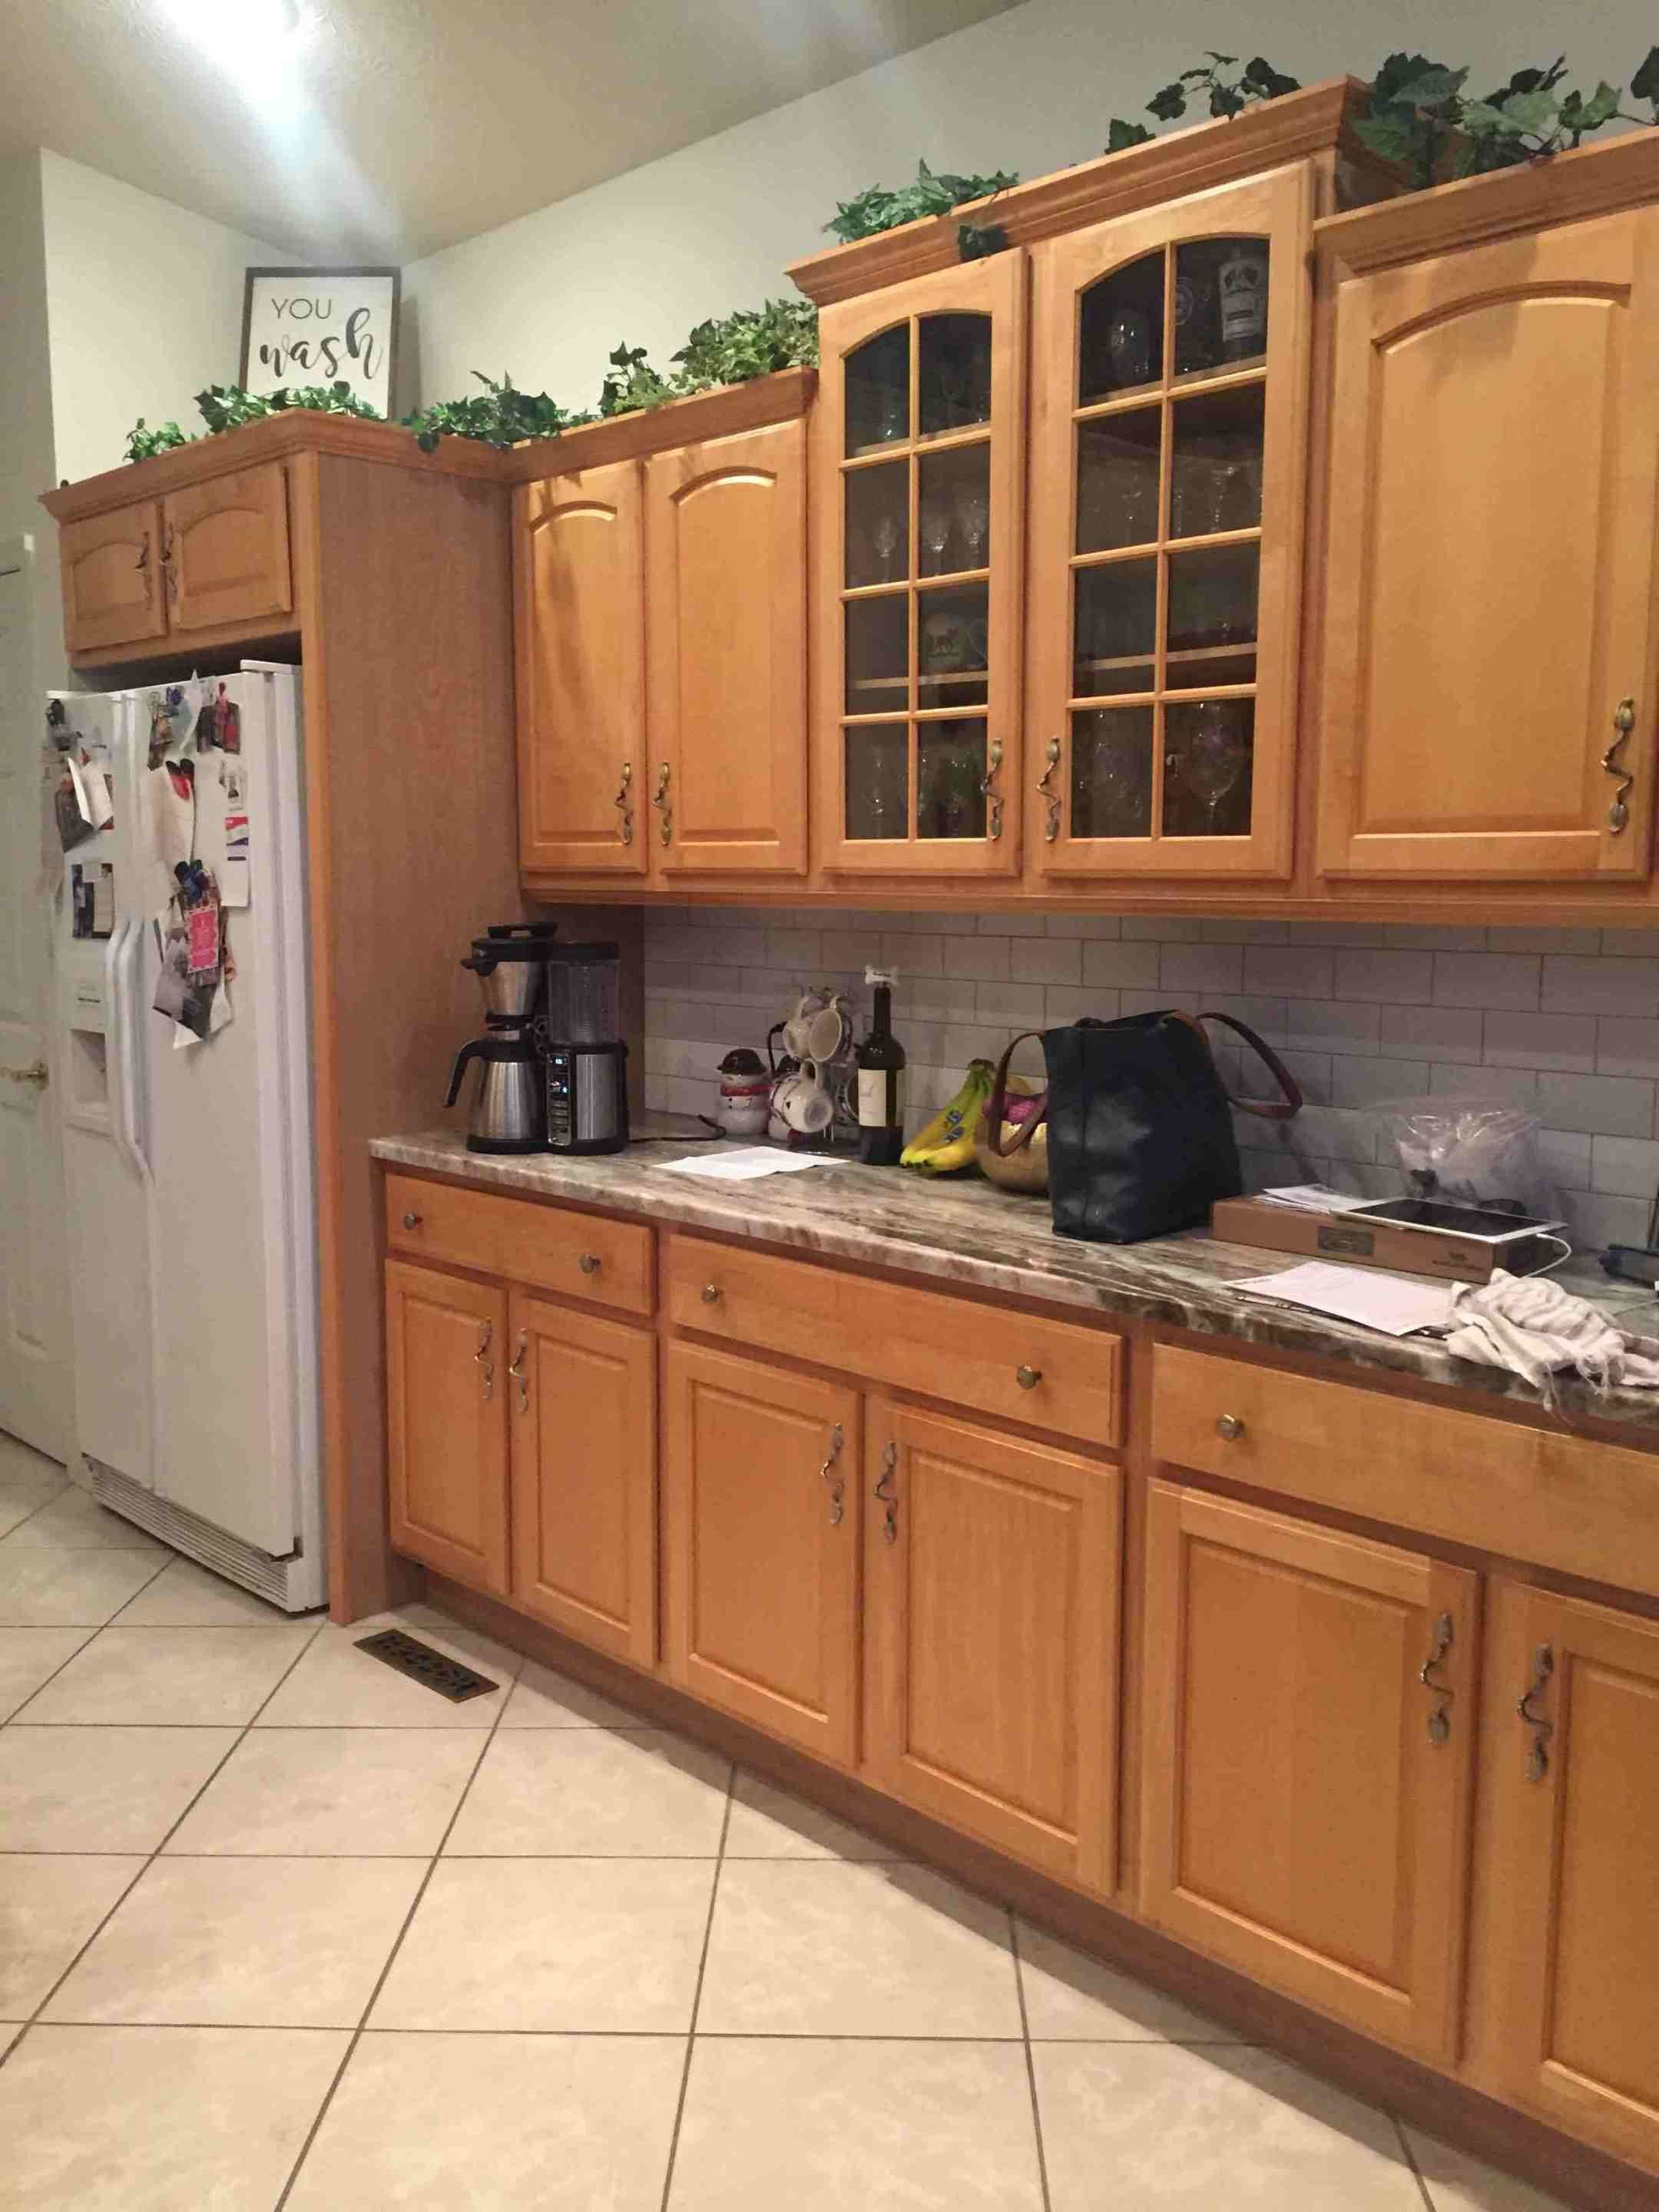 Mindful Gray Kitchen Cabinets Graykitchencabinets Sherwin Williams Mindful Gray In 2020 Grey Kitchen Cabinets Grey Kitchen Kitchen Cabinets